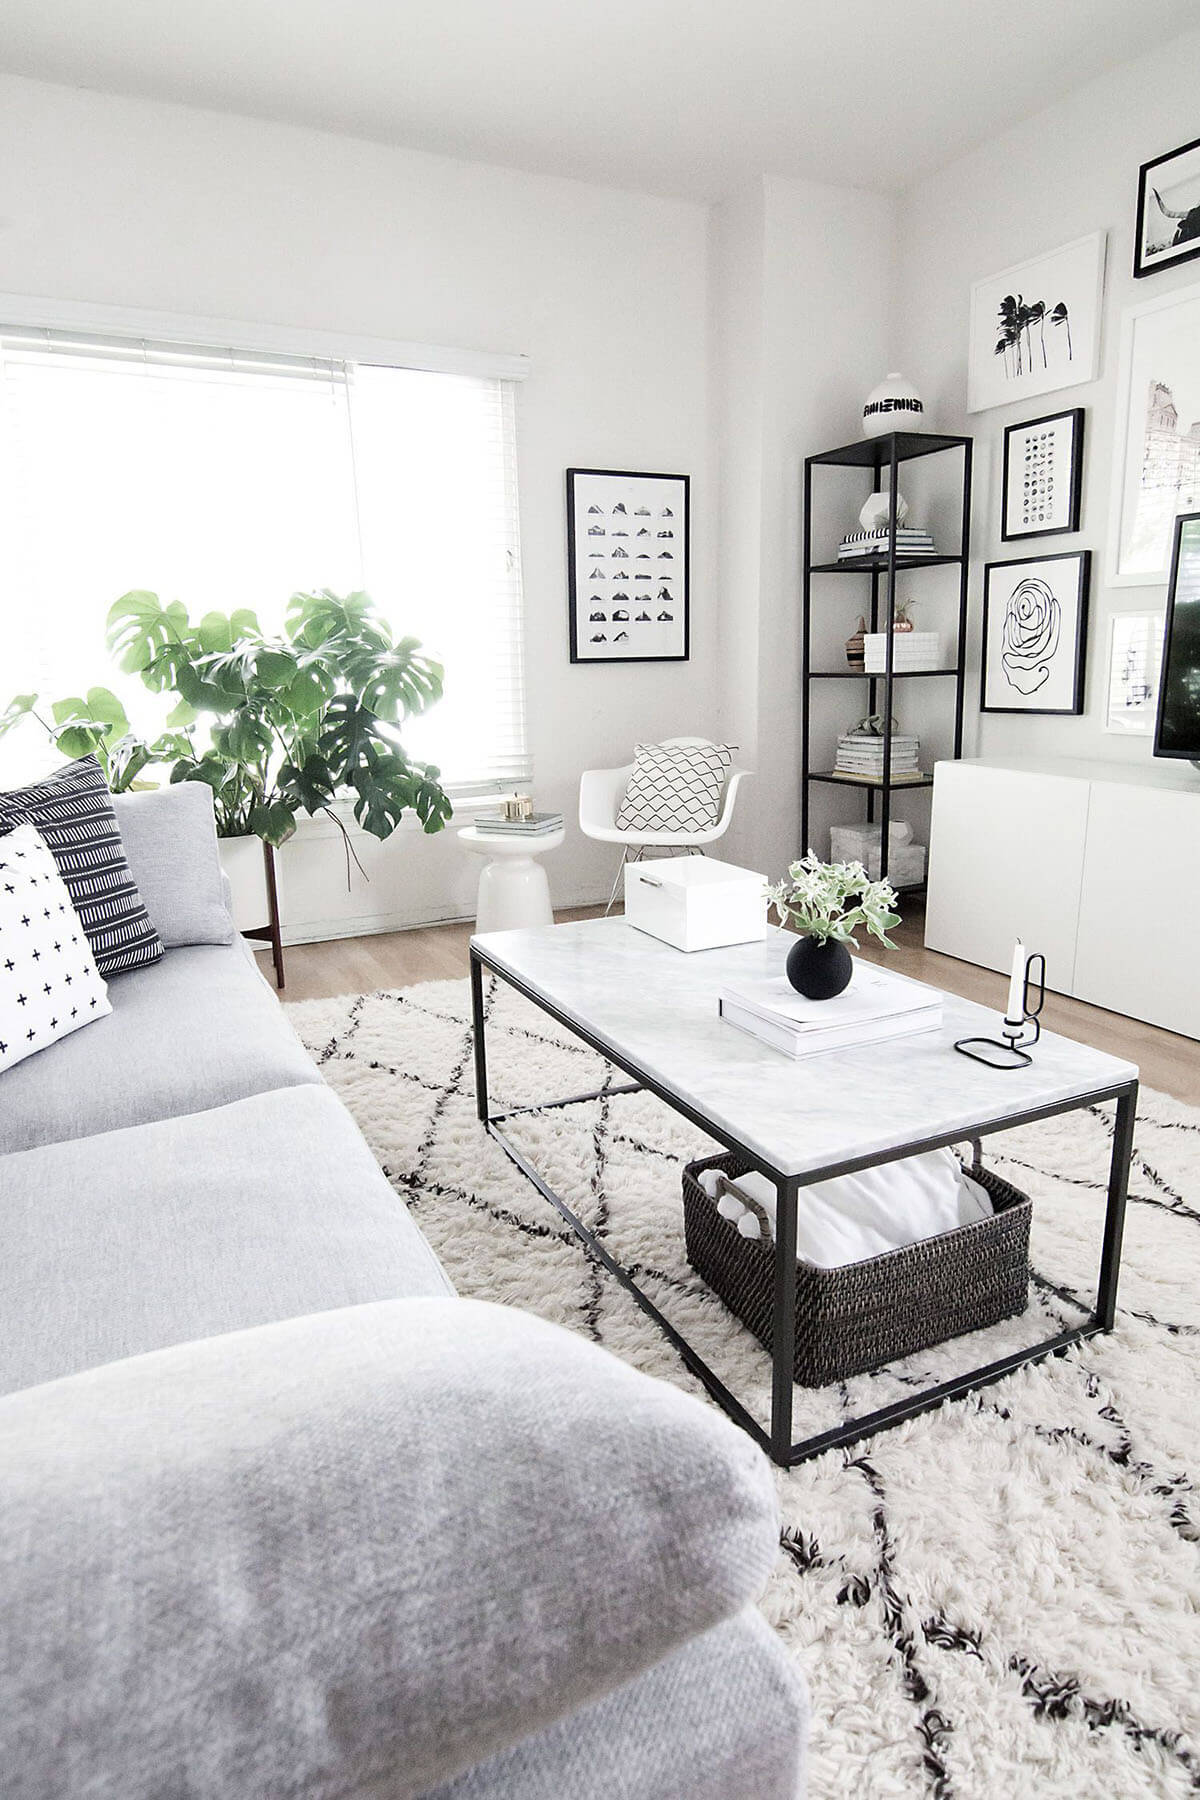 Comfortable White, Gray, and Black Room